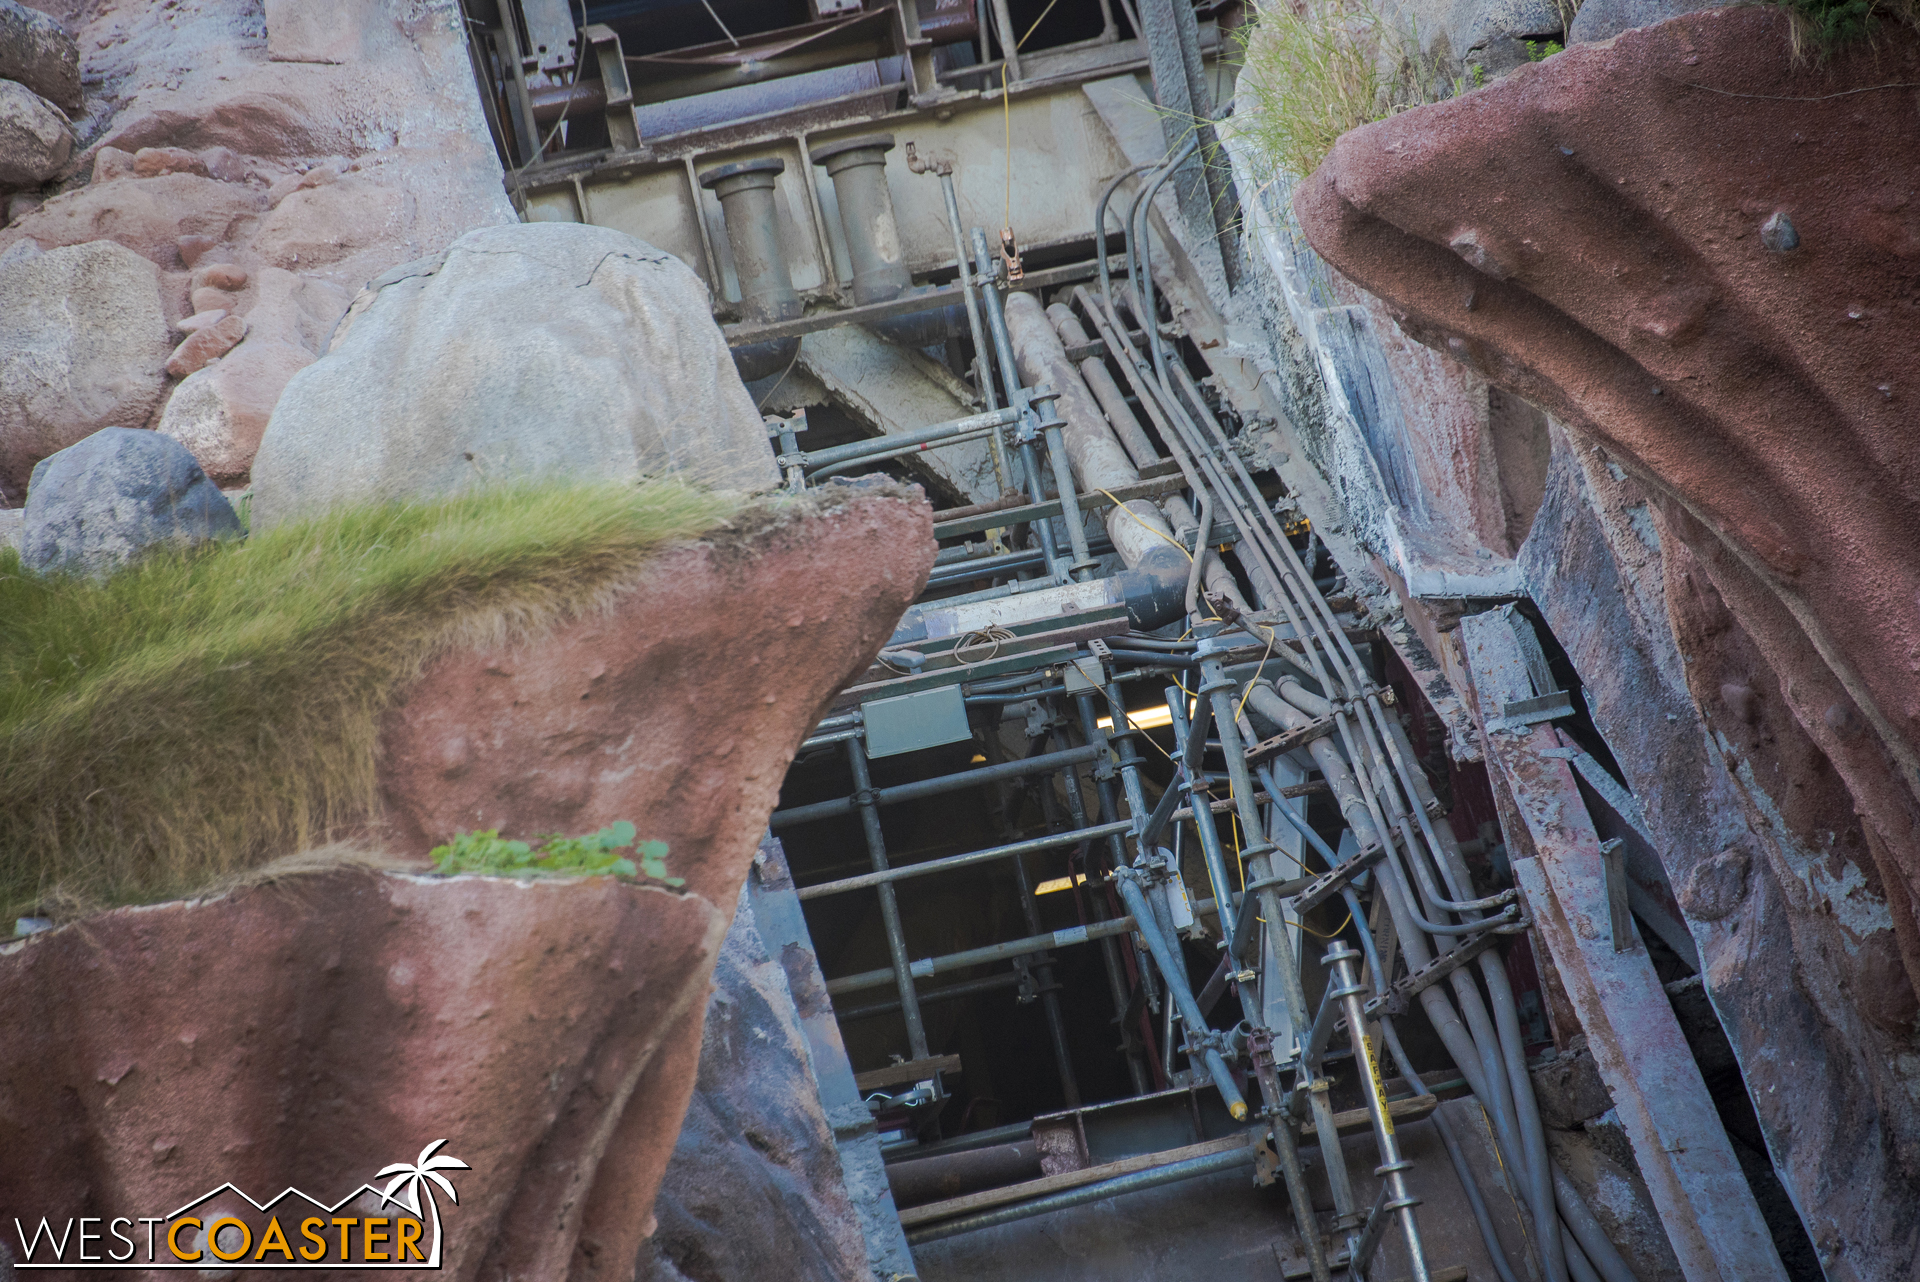 The drop flume has been removed, so you can see into the mountain's guts.